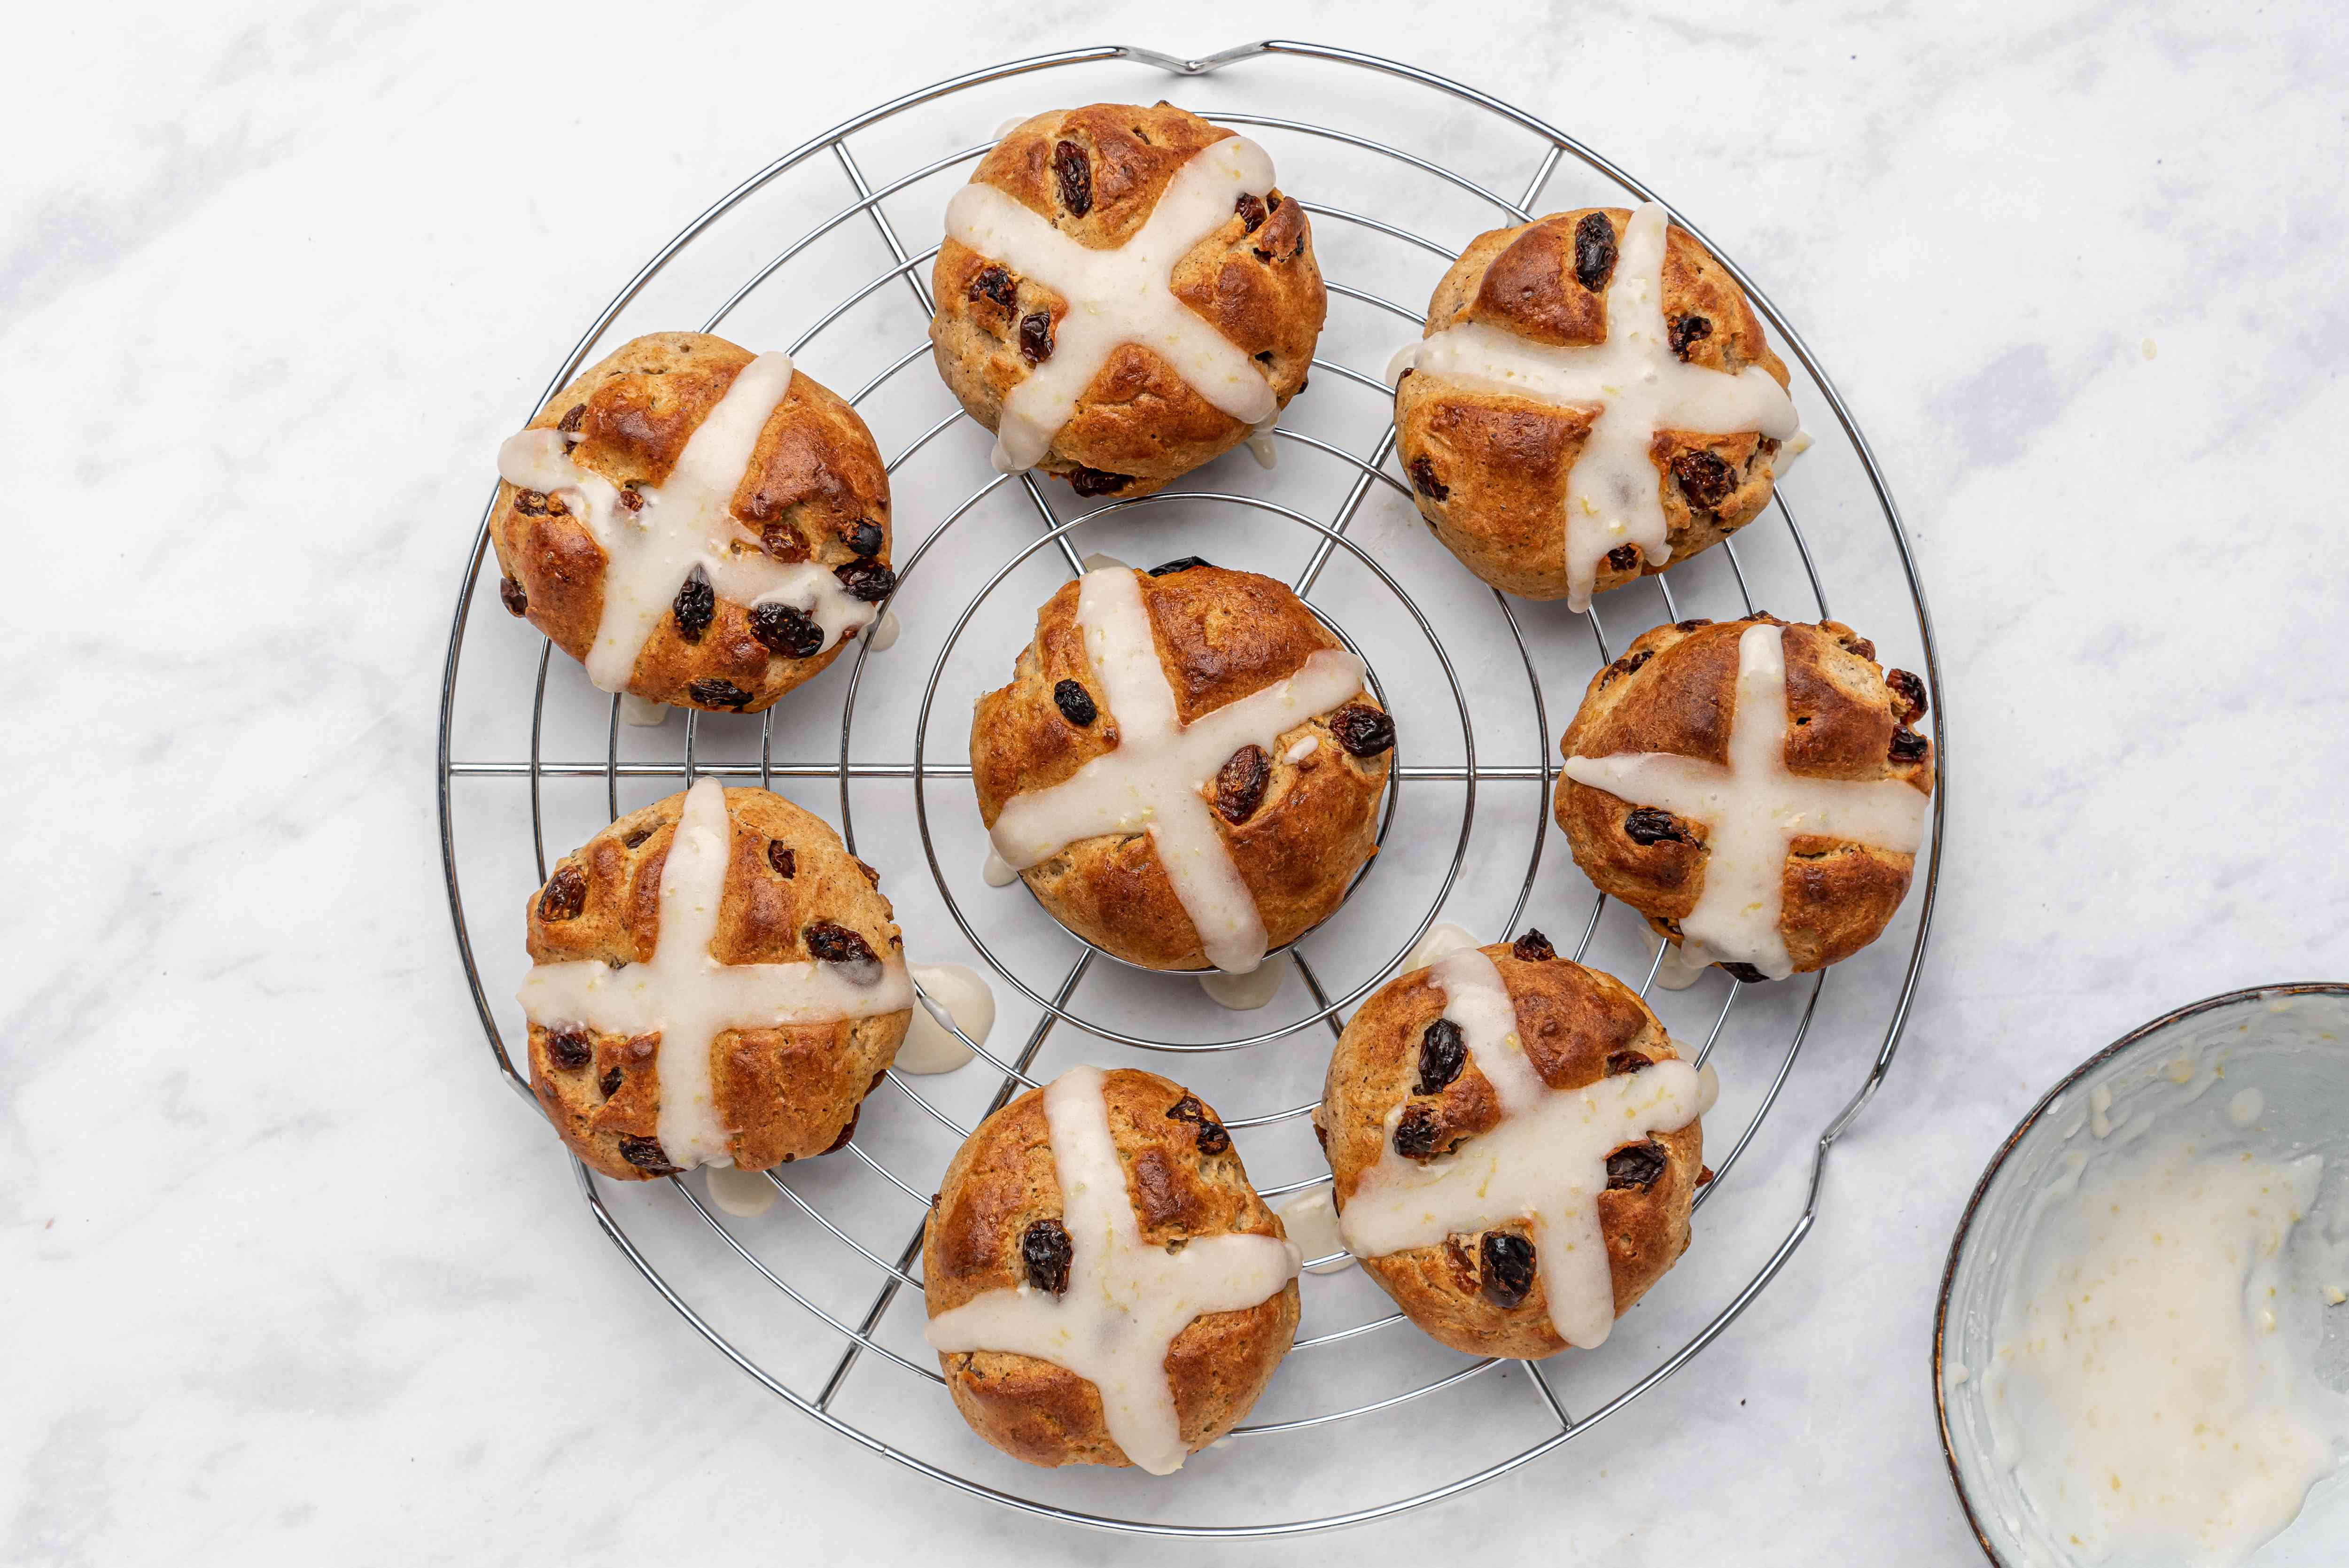 Gluten- and Dairy-Free Hot Cross Buns on a cooling rack